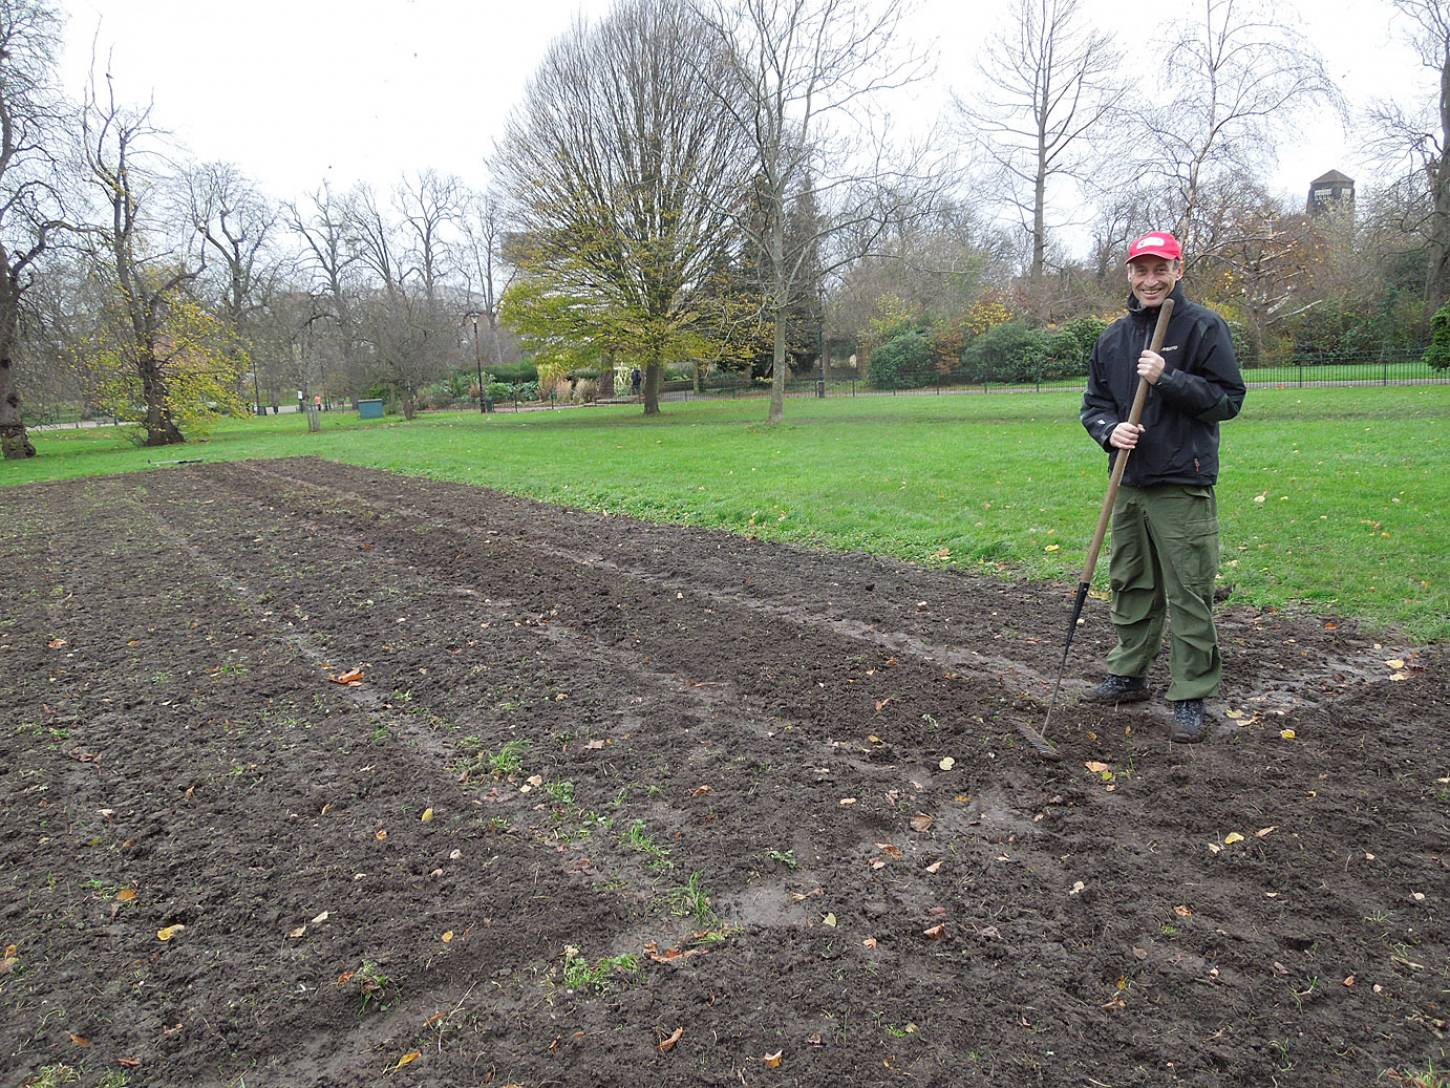 Day 2 sowing on Ruskin Park with the <a href='http://www.kenningtonbakery.co.uk/' target=_blank>Kenington baker</a>, John Townsend - 3:02pm&nbsp;29<sup>th</sup>&nbsp;Nov.&nbsp;'15